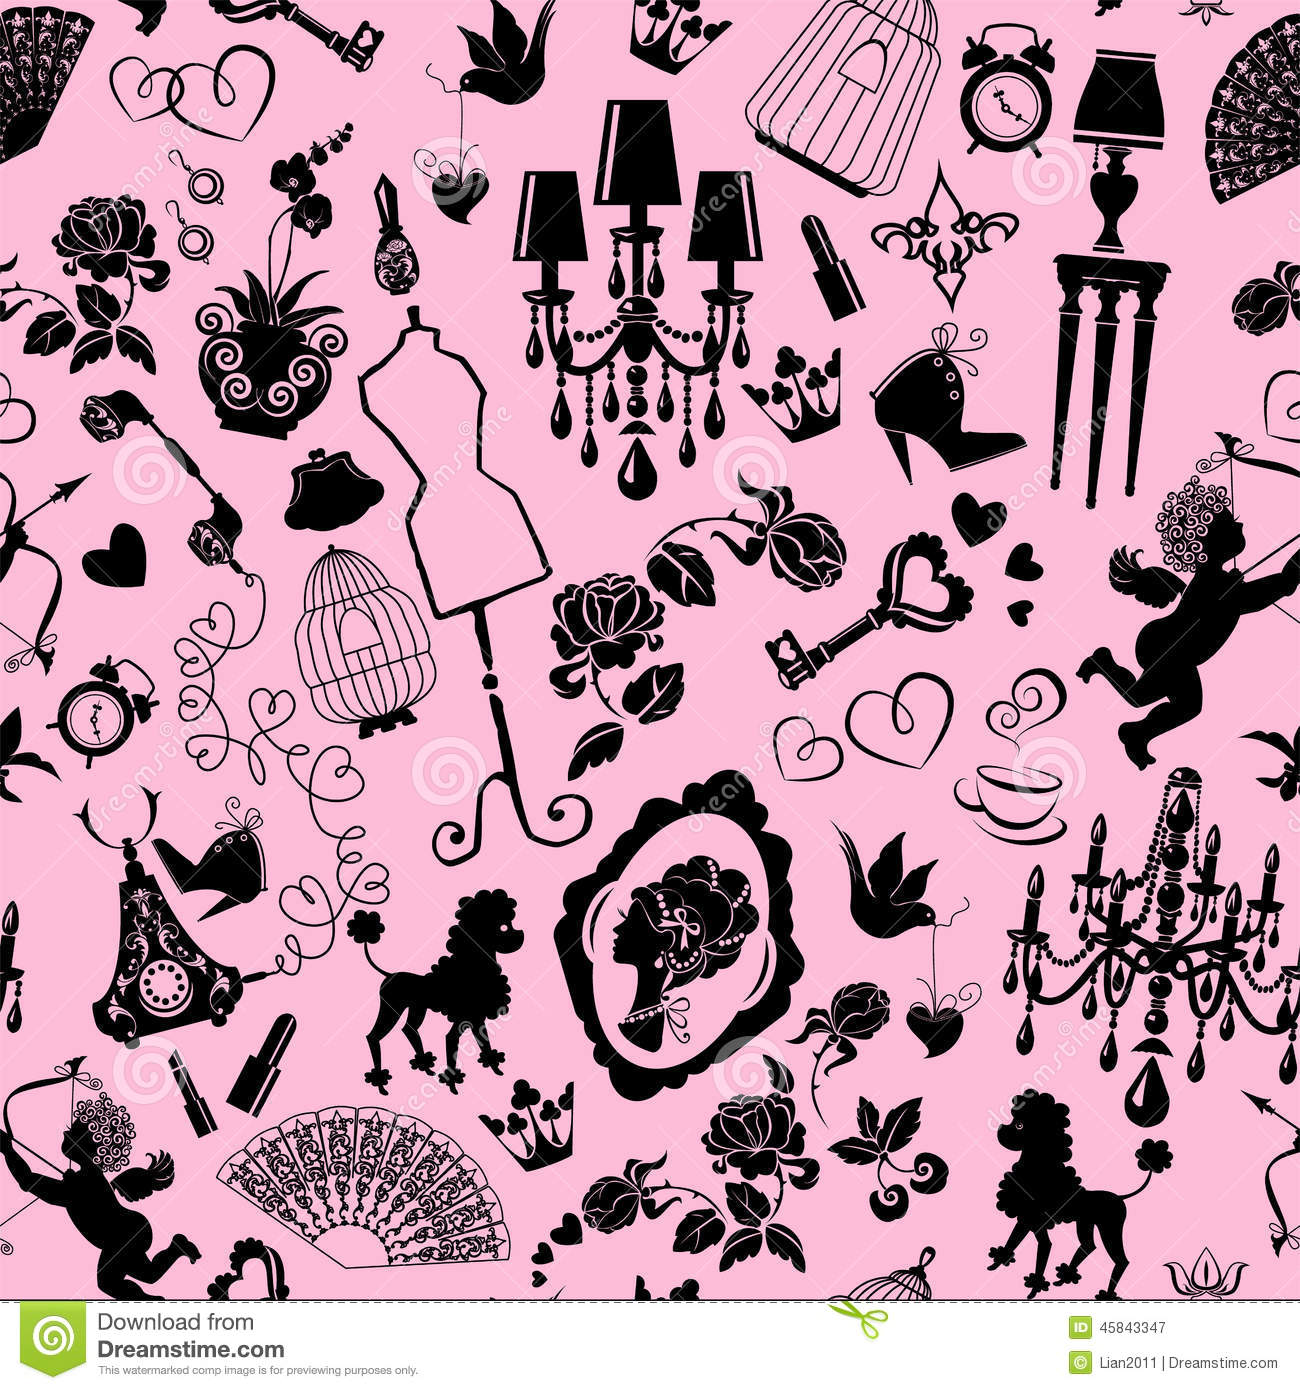 Pink and black fashion background